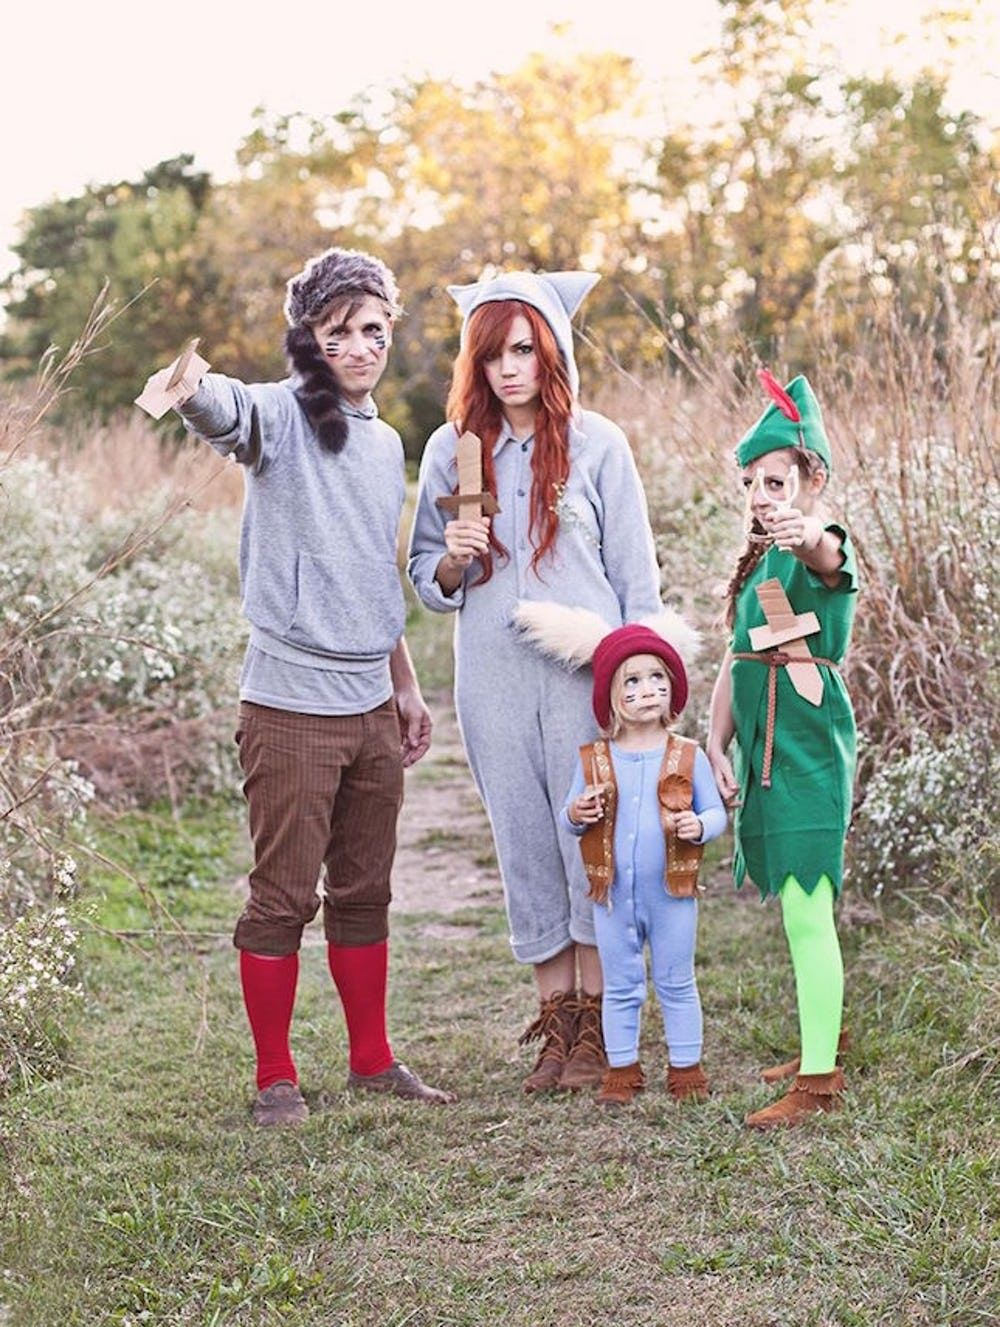 From emily in paris to black is king — here are 20 halloween costume ideas that'll no doubt win you best costume. 36 Creative Family Halloween Costumes Family Costumes With Baby